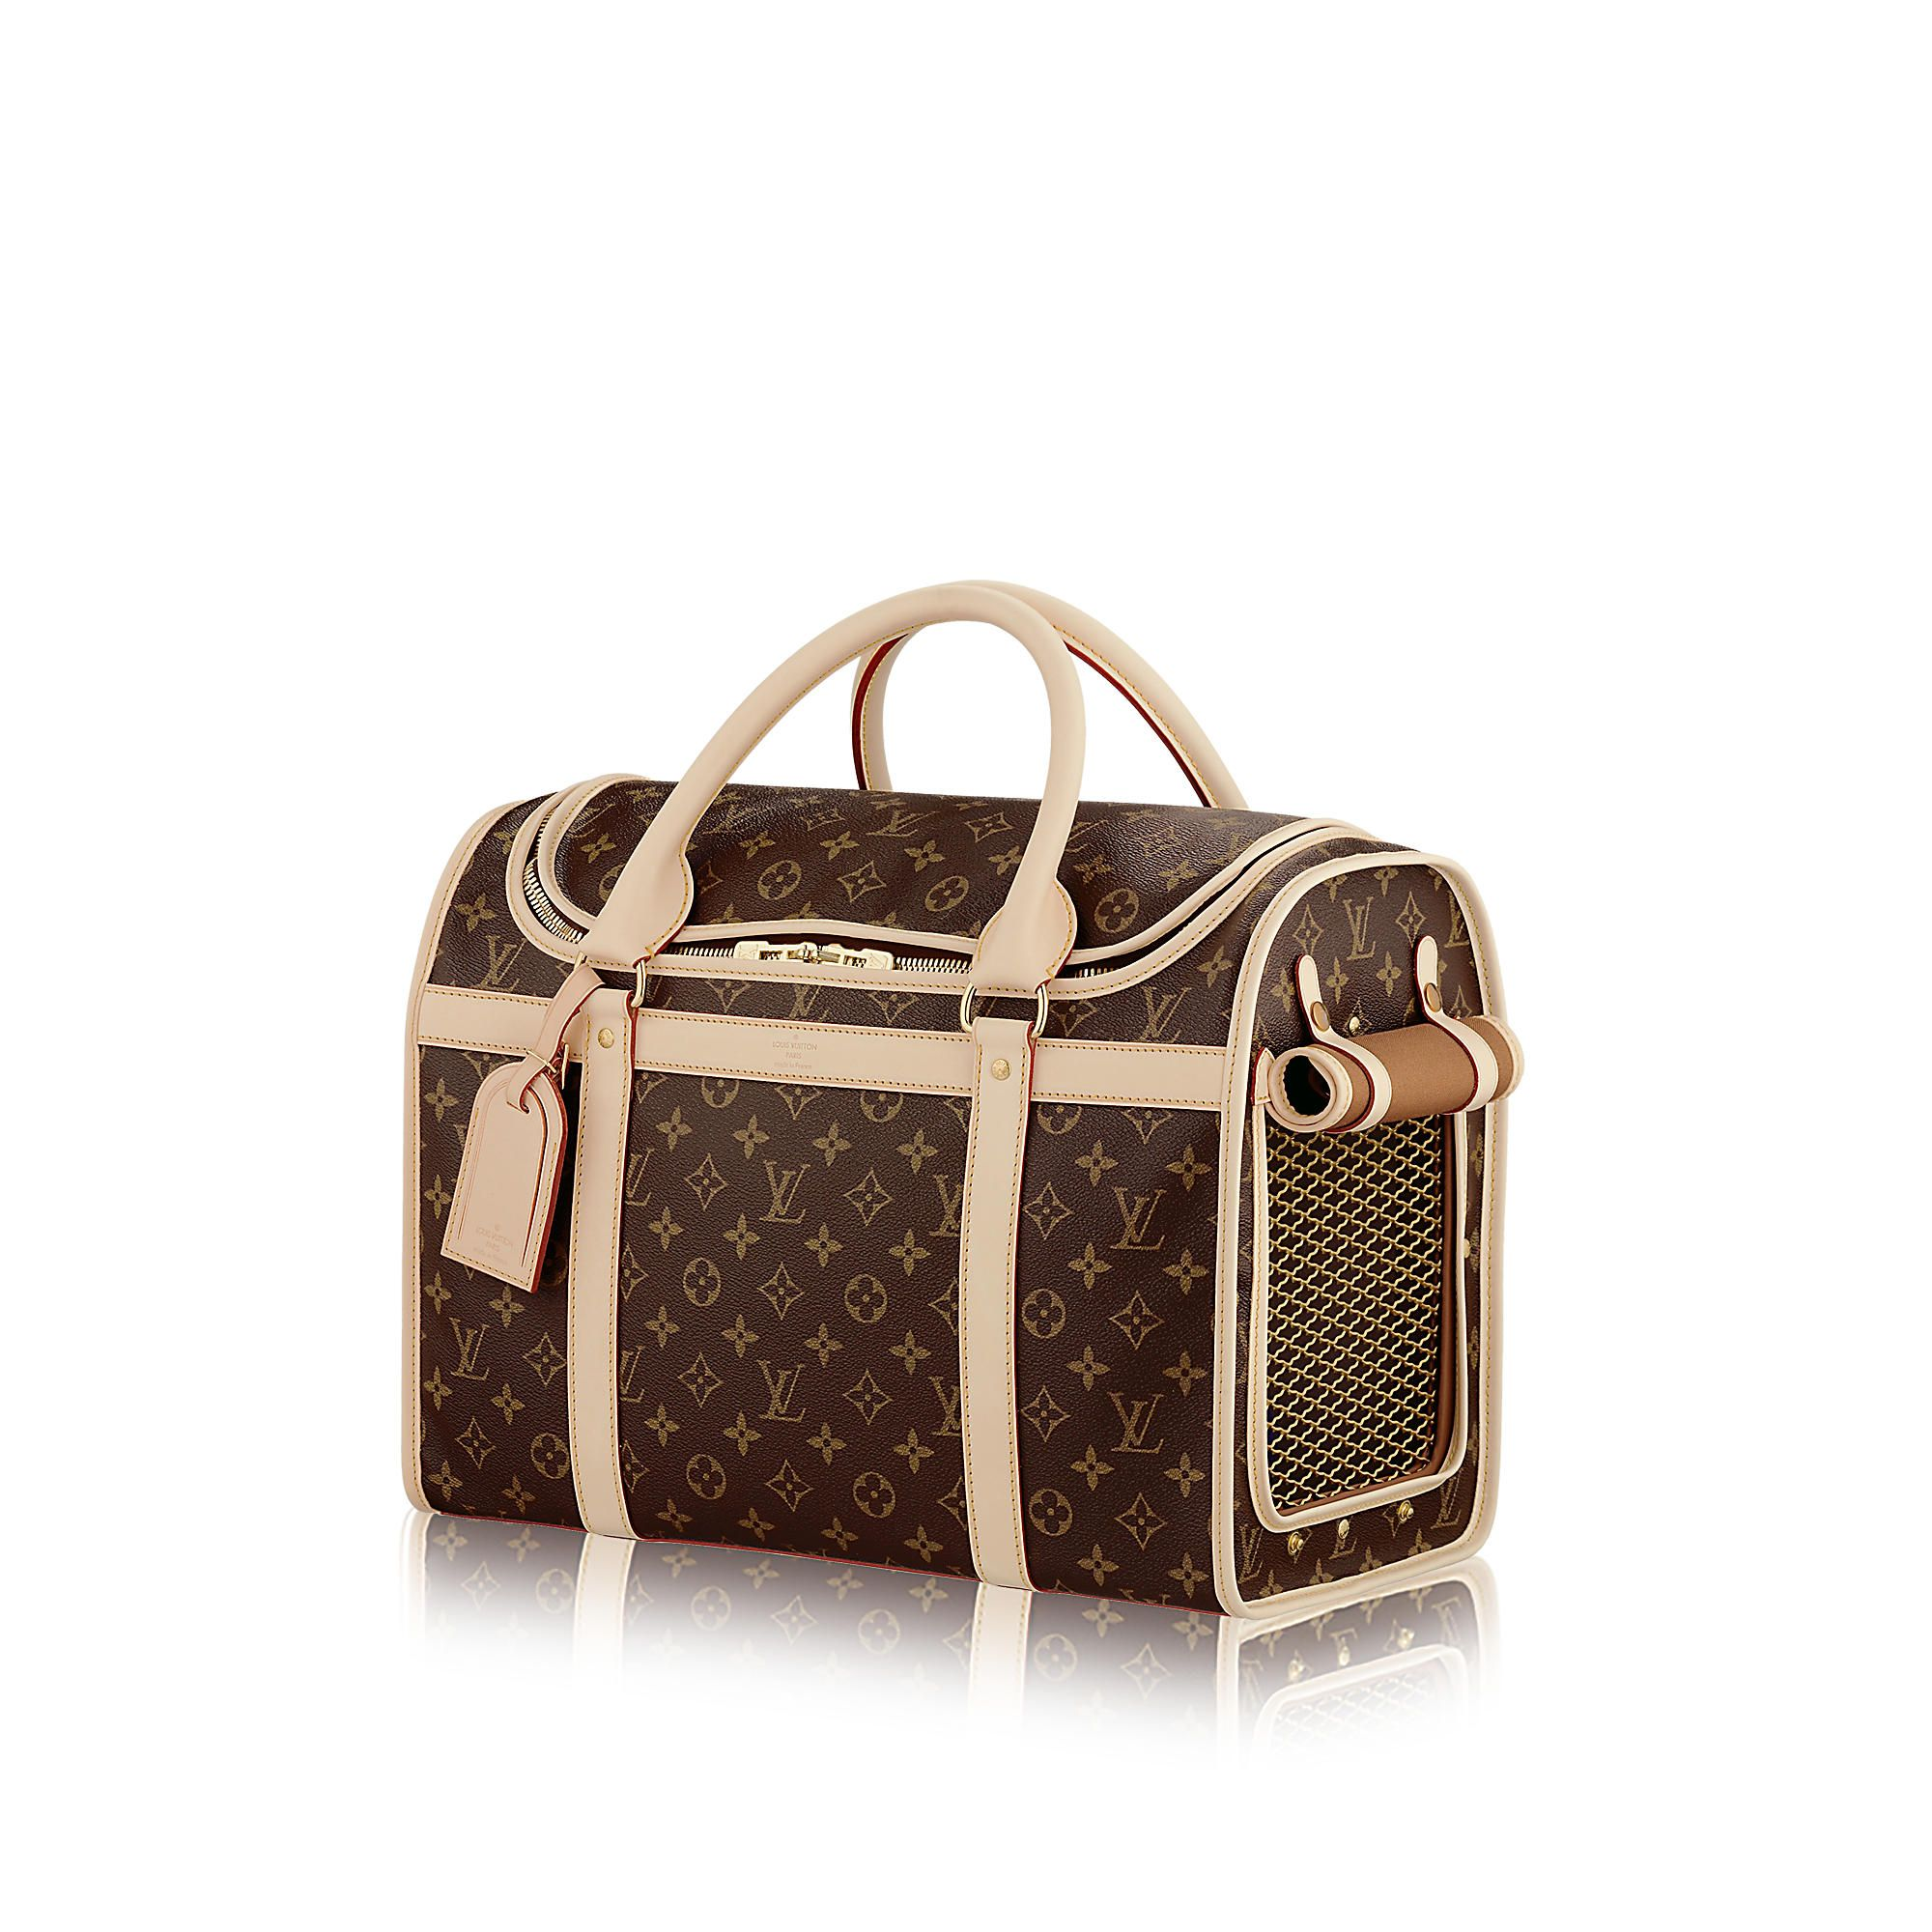 ... Free Worldwide Shipping. Dog Carrier 40 - Monogram Canvas - TRAVEL  5600d5a0d35fc